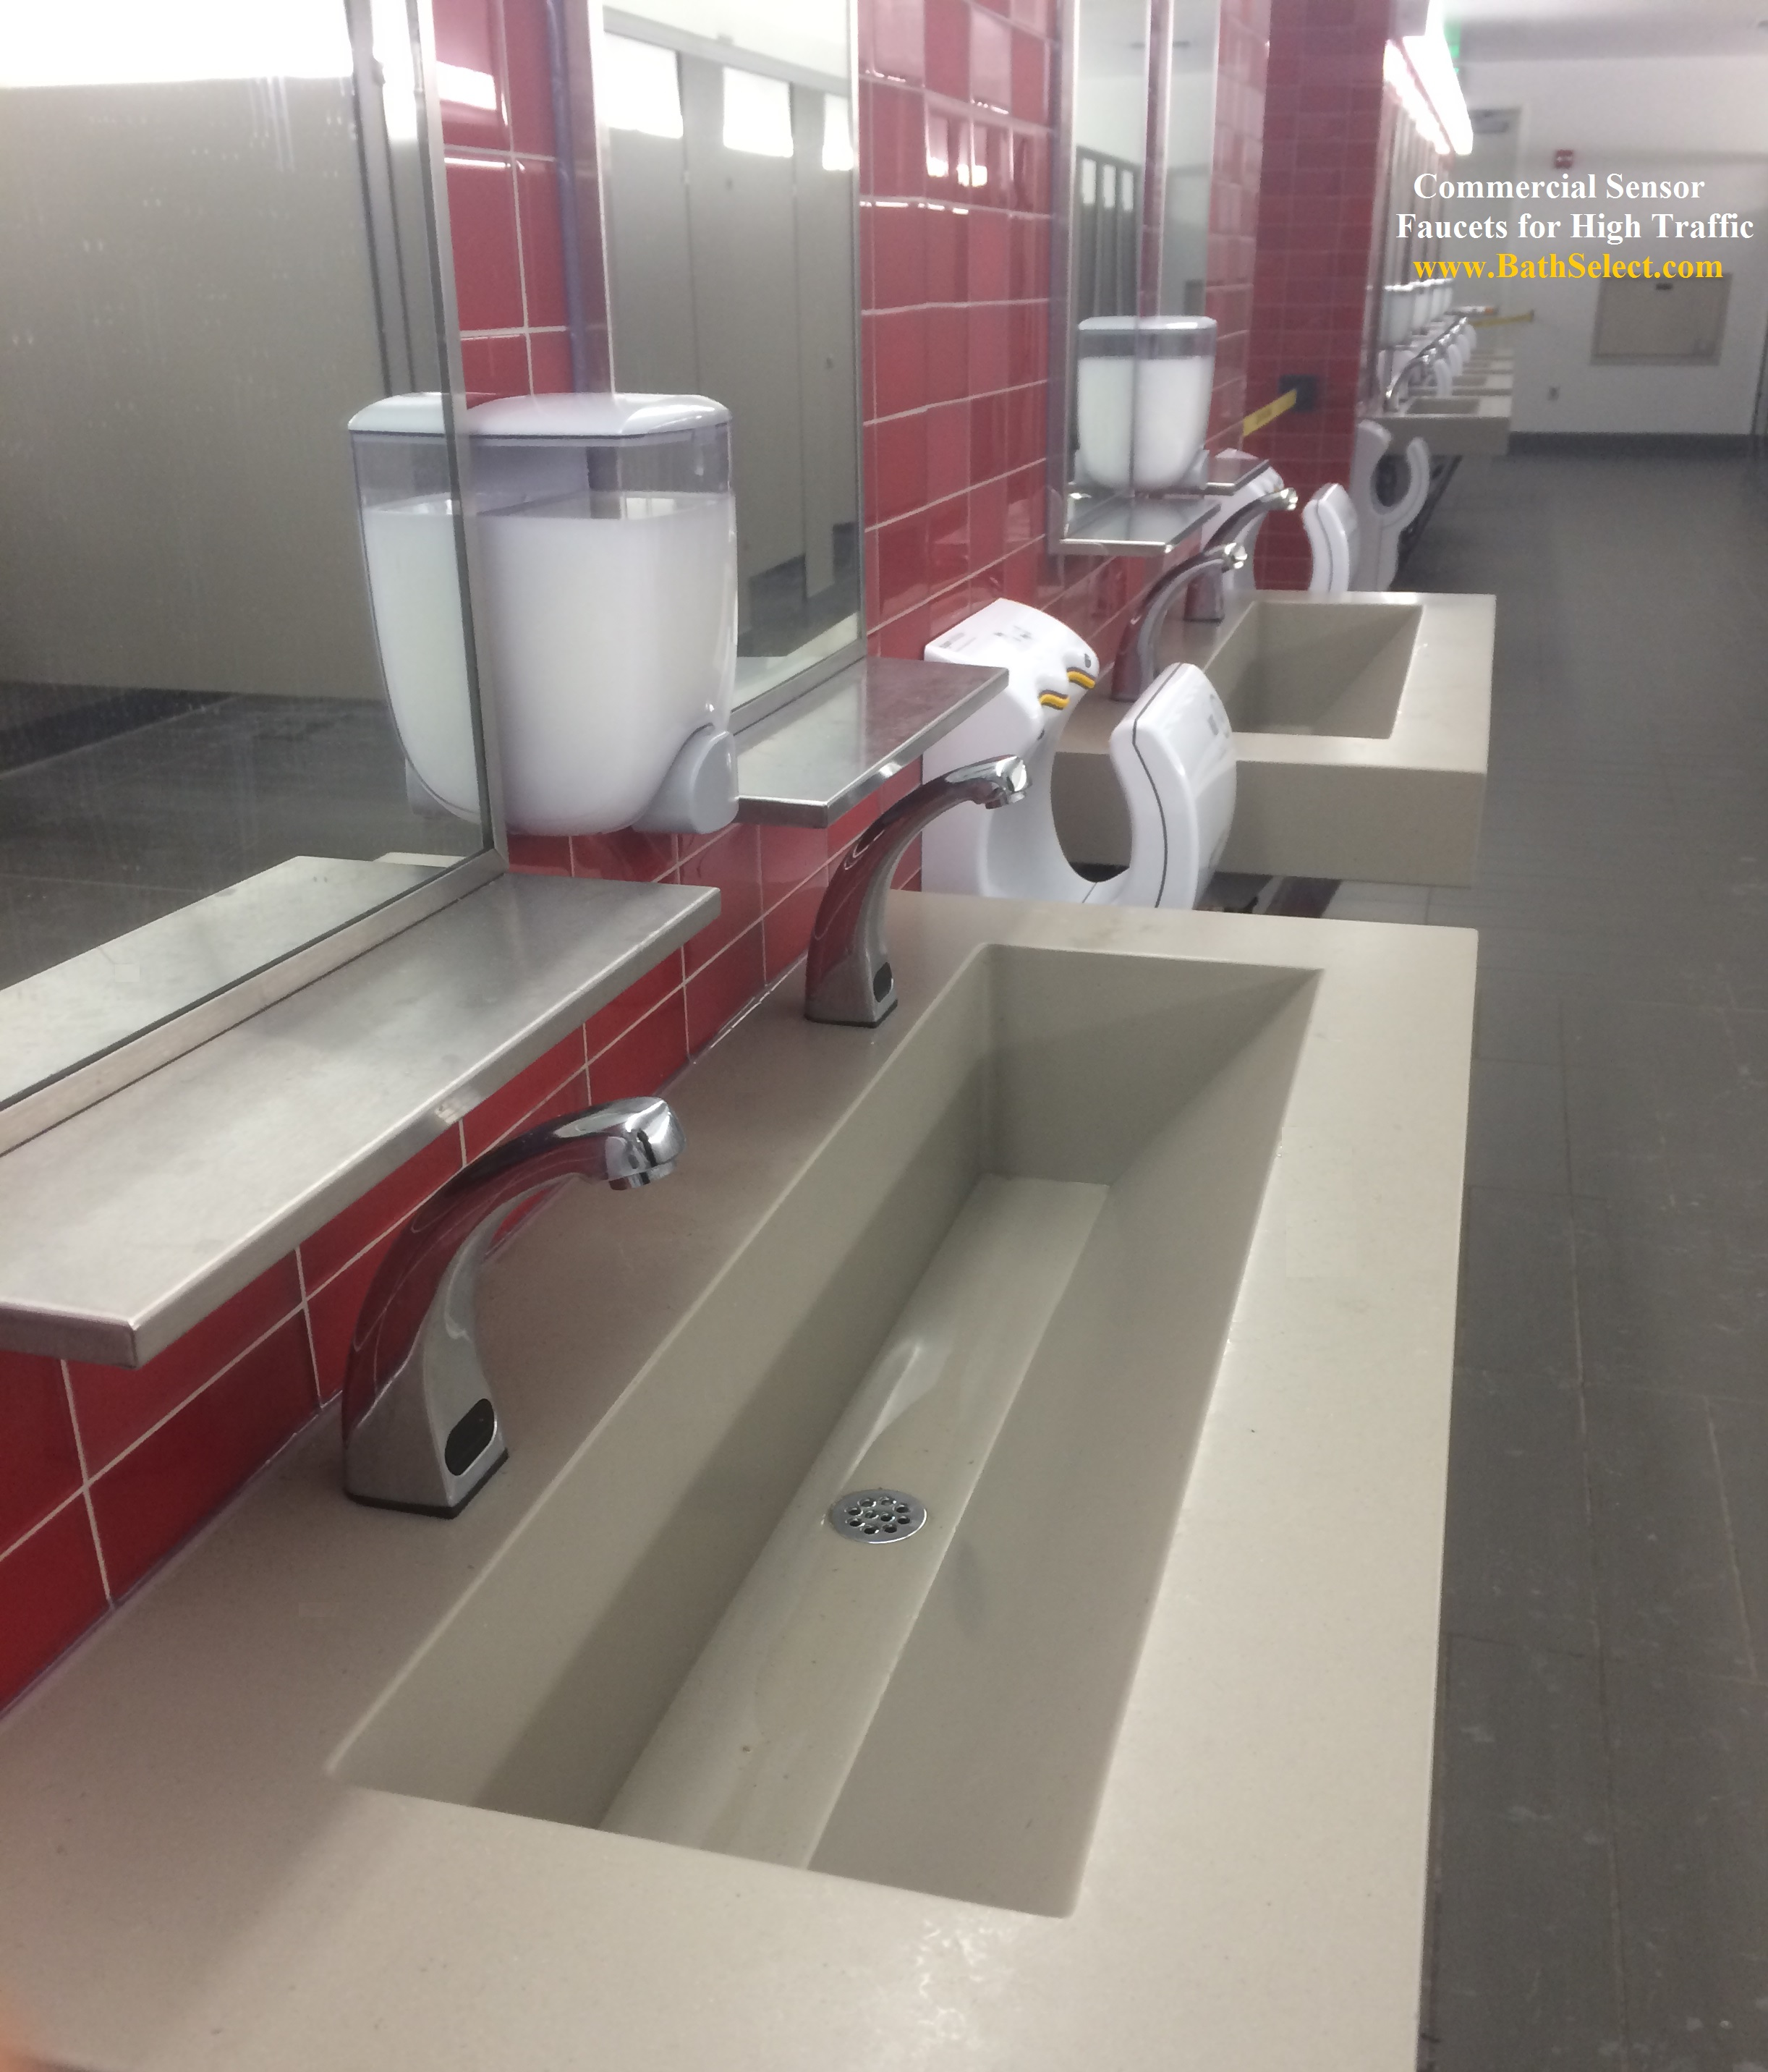 Specifications-Hands-Free-Sensor-Faucets-Public-Restrooms